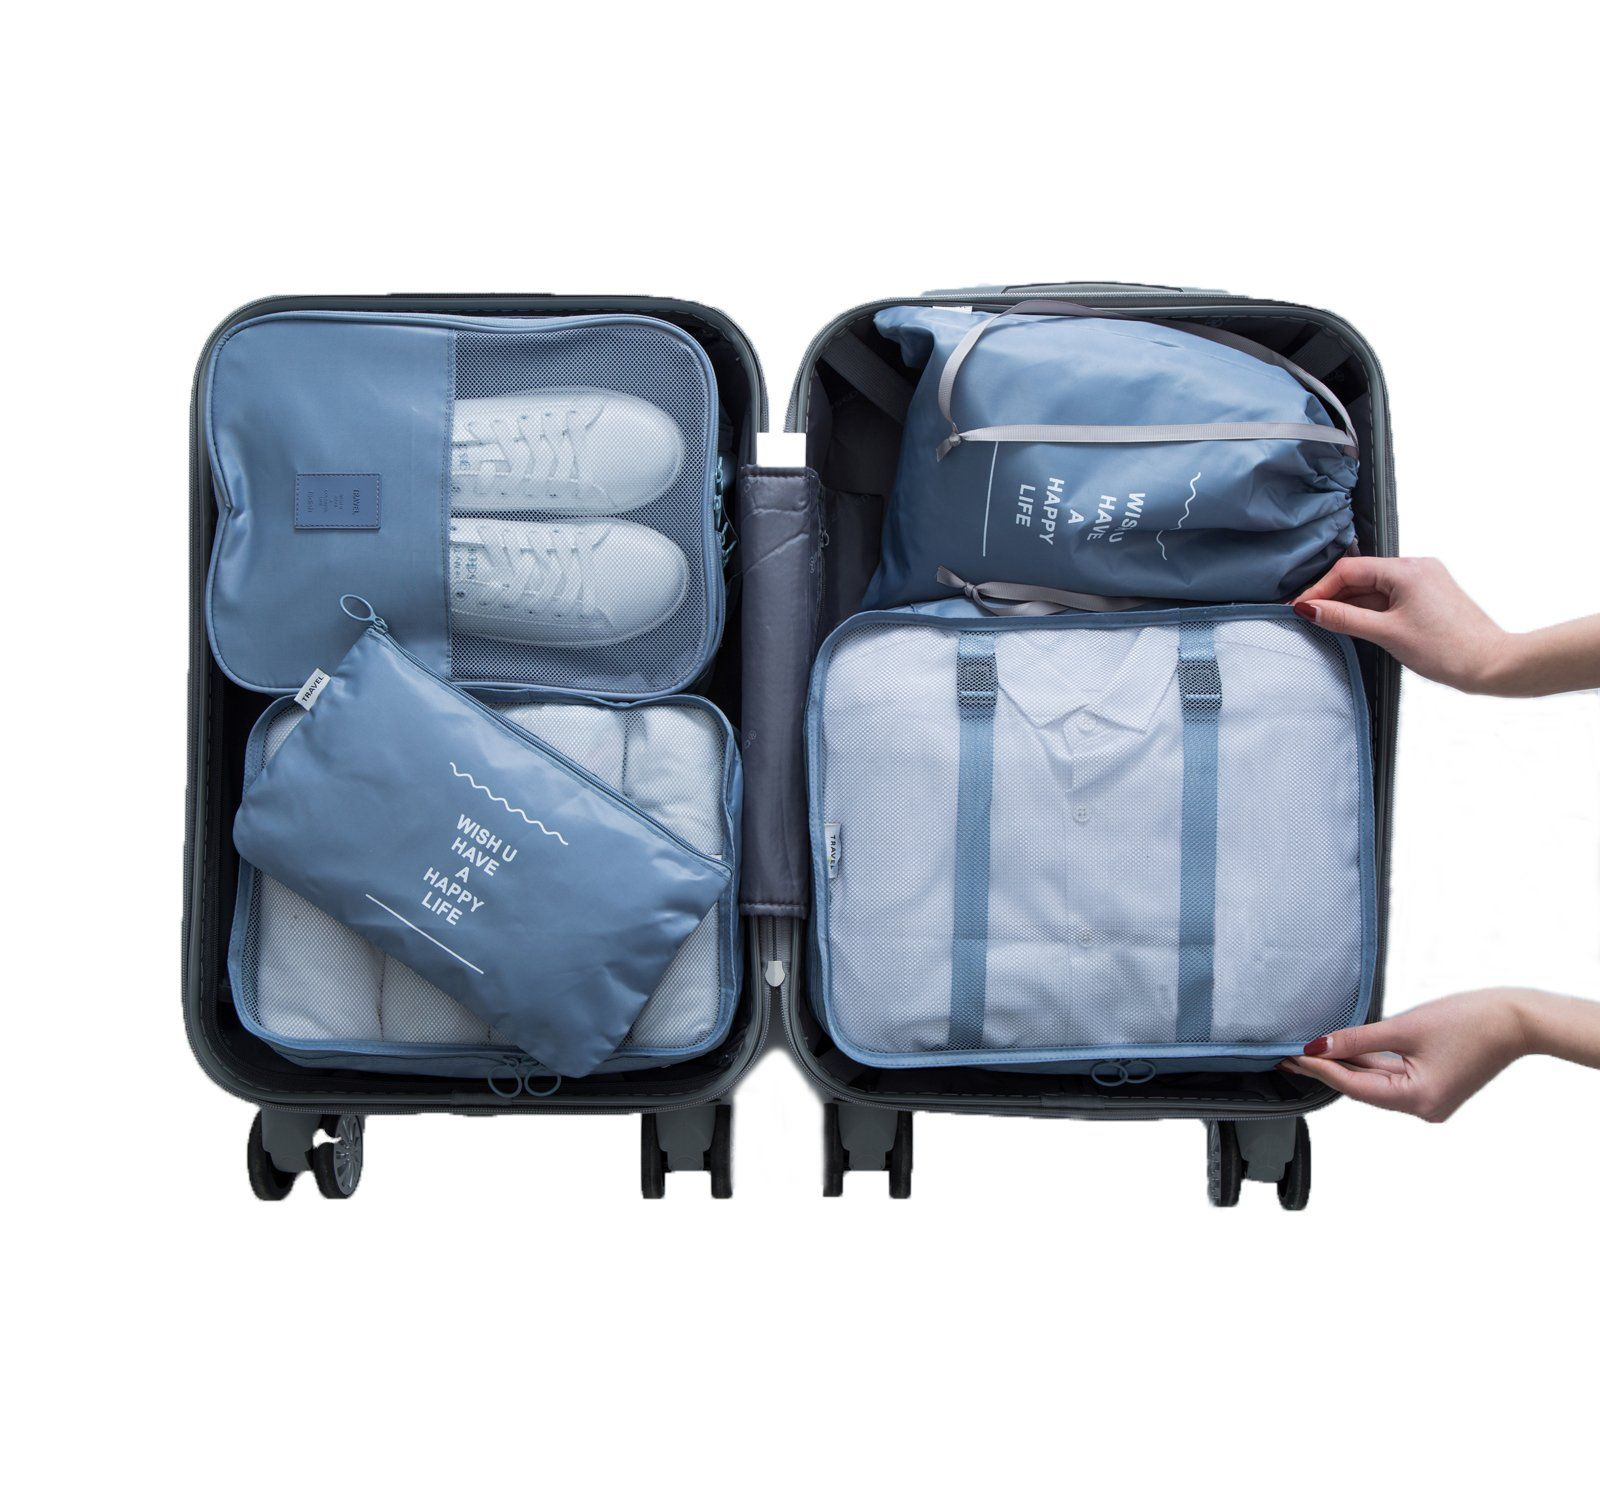 1cd5529a5510 5Pcs Packing Cubes Set Travel Luggage Organizers with Shoes Bag 5Pcs Grey  -- You could locate even more details by seeing the photo web link.